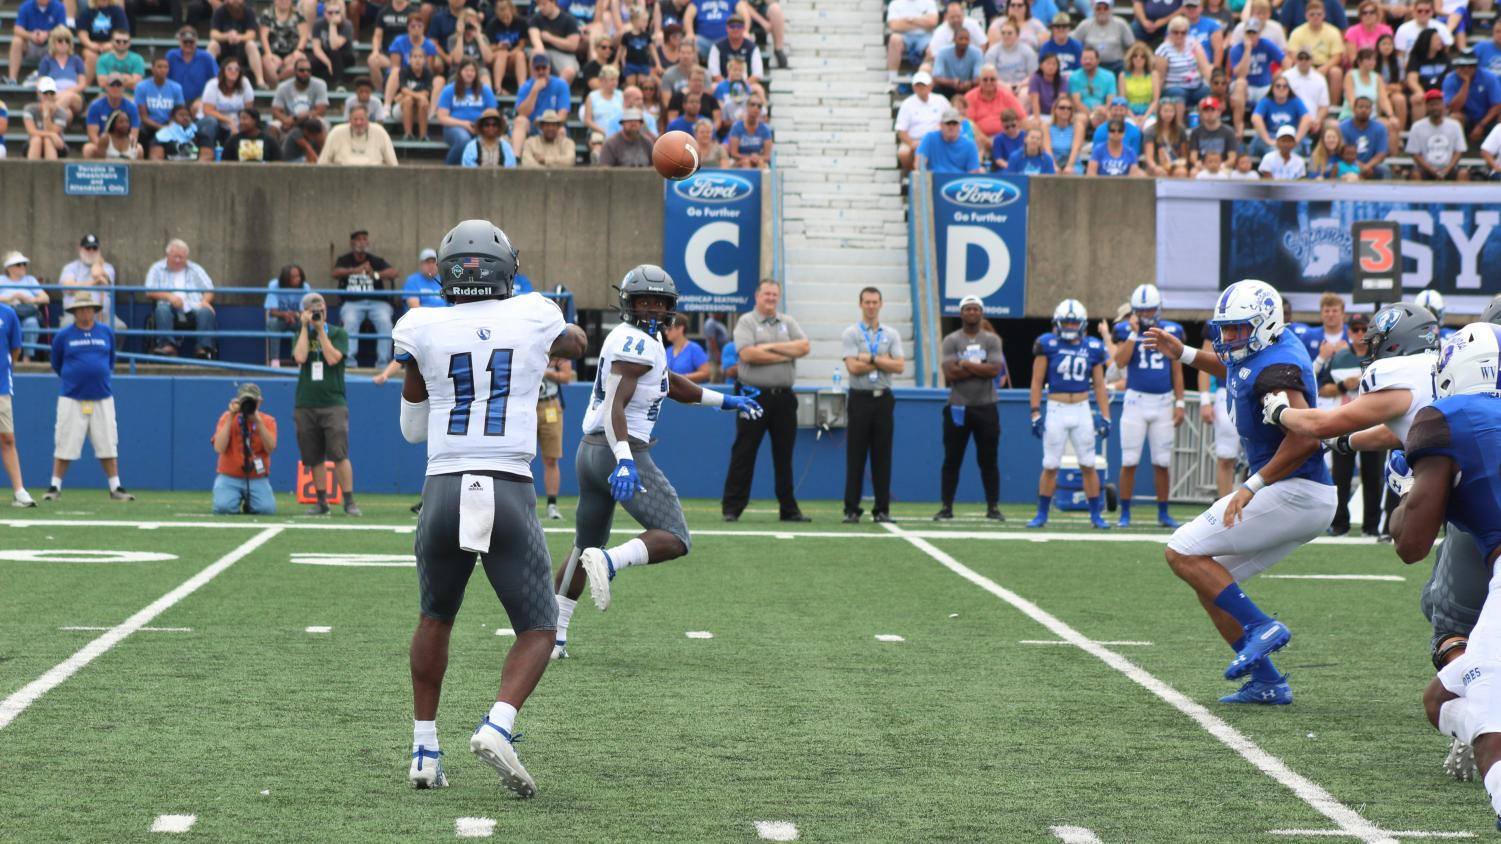 Eastern quarterback Johnathan Brantley throws a pass to Darshon McCullough in Eastern's 16-6 loss to Indiana State Saturday. Eastern had just 200 yards of offense.